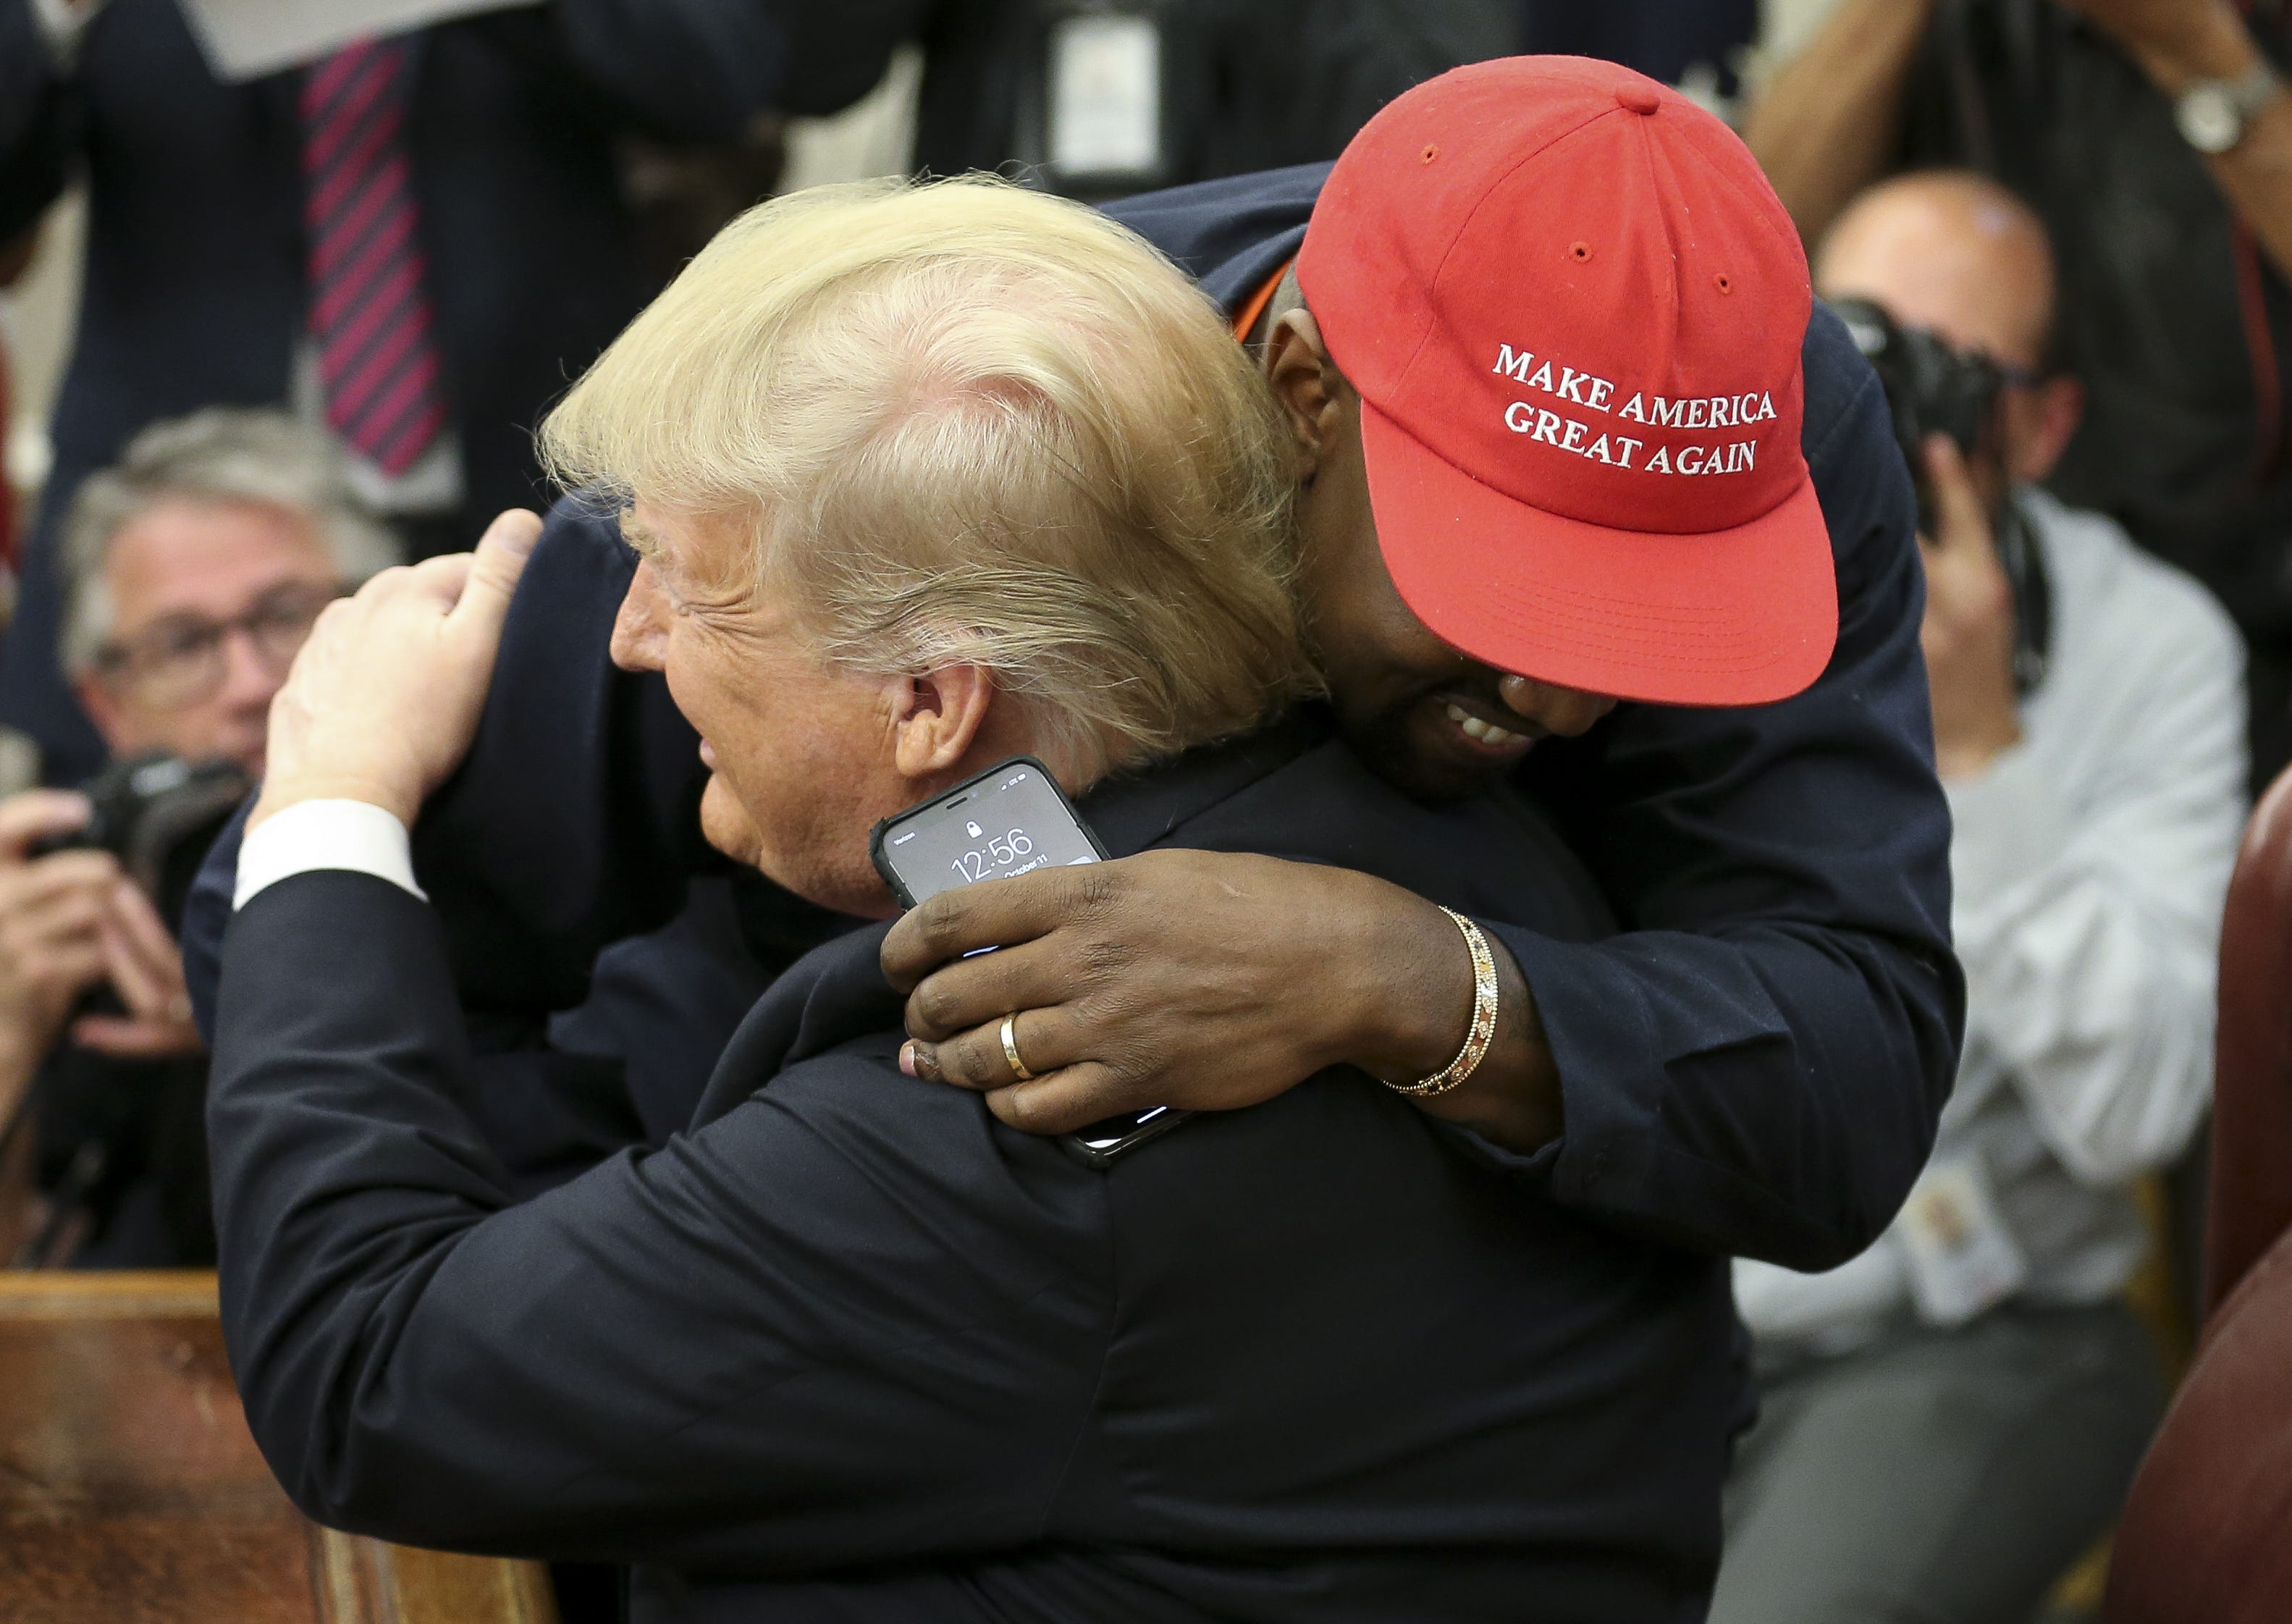 Kanye West goes on 10-minute soliloquy, references Superman cape and swears during White House visit